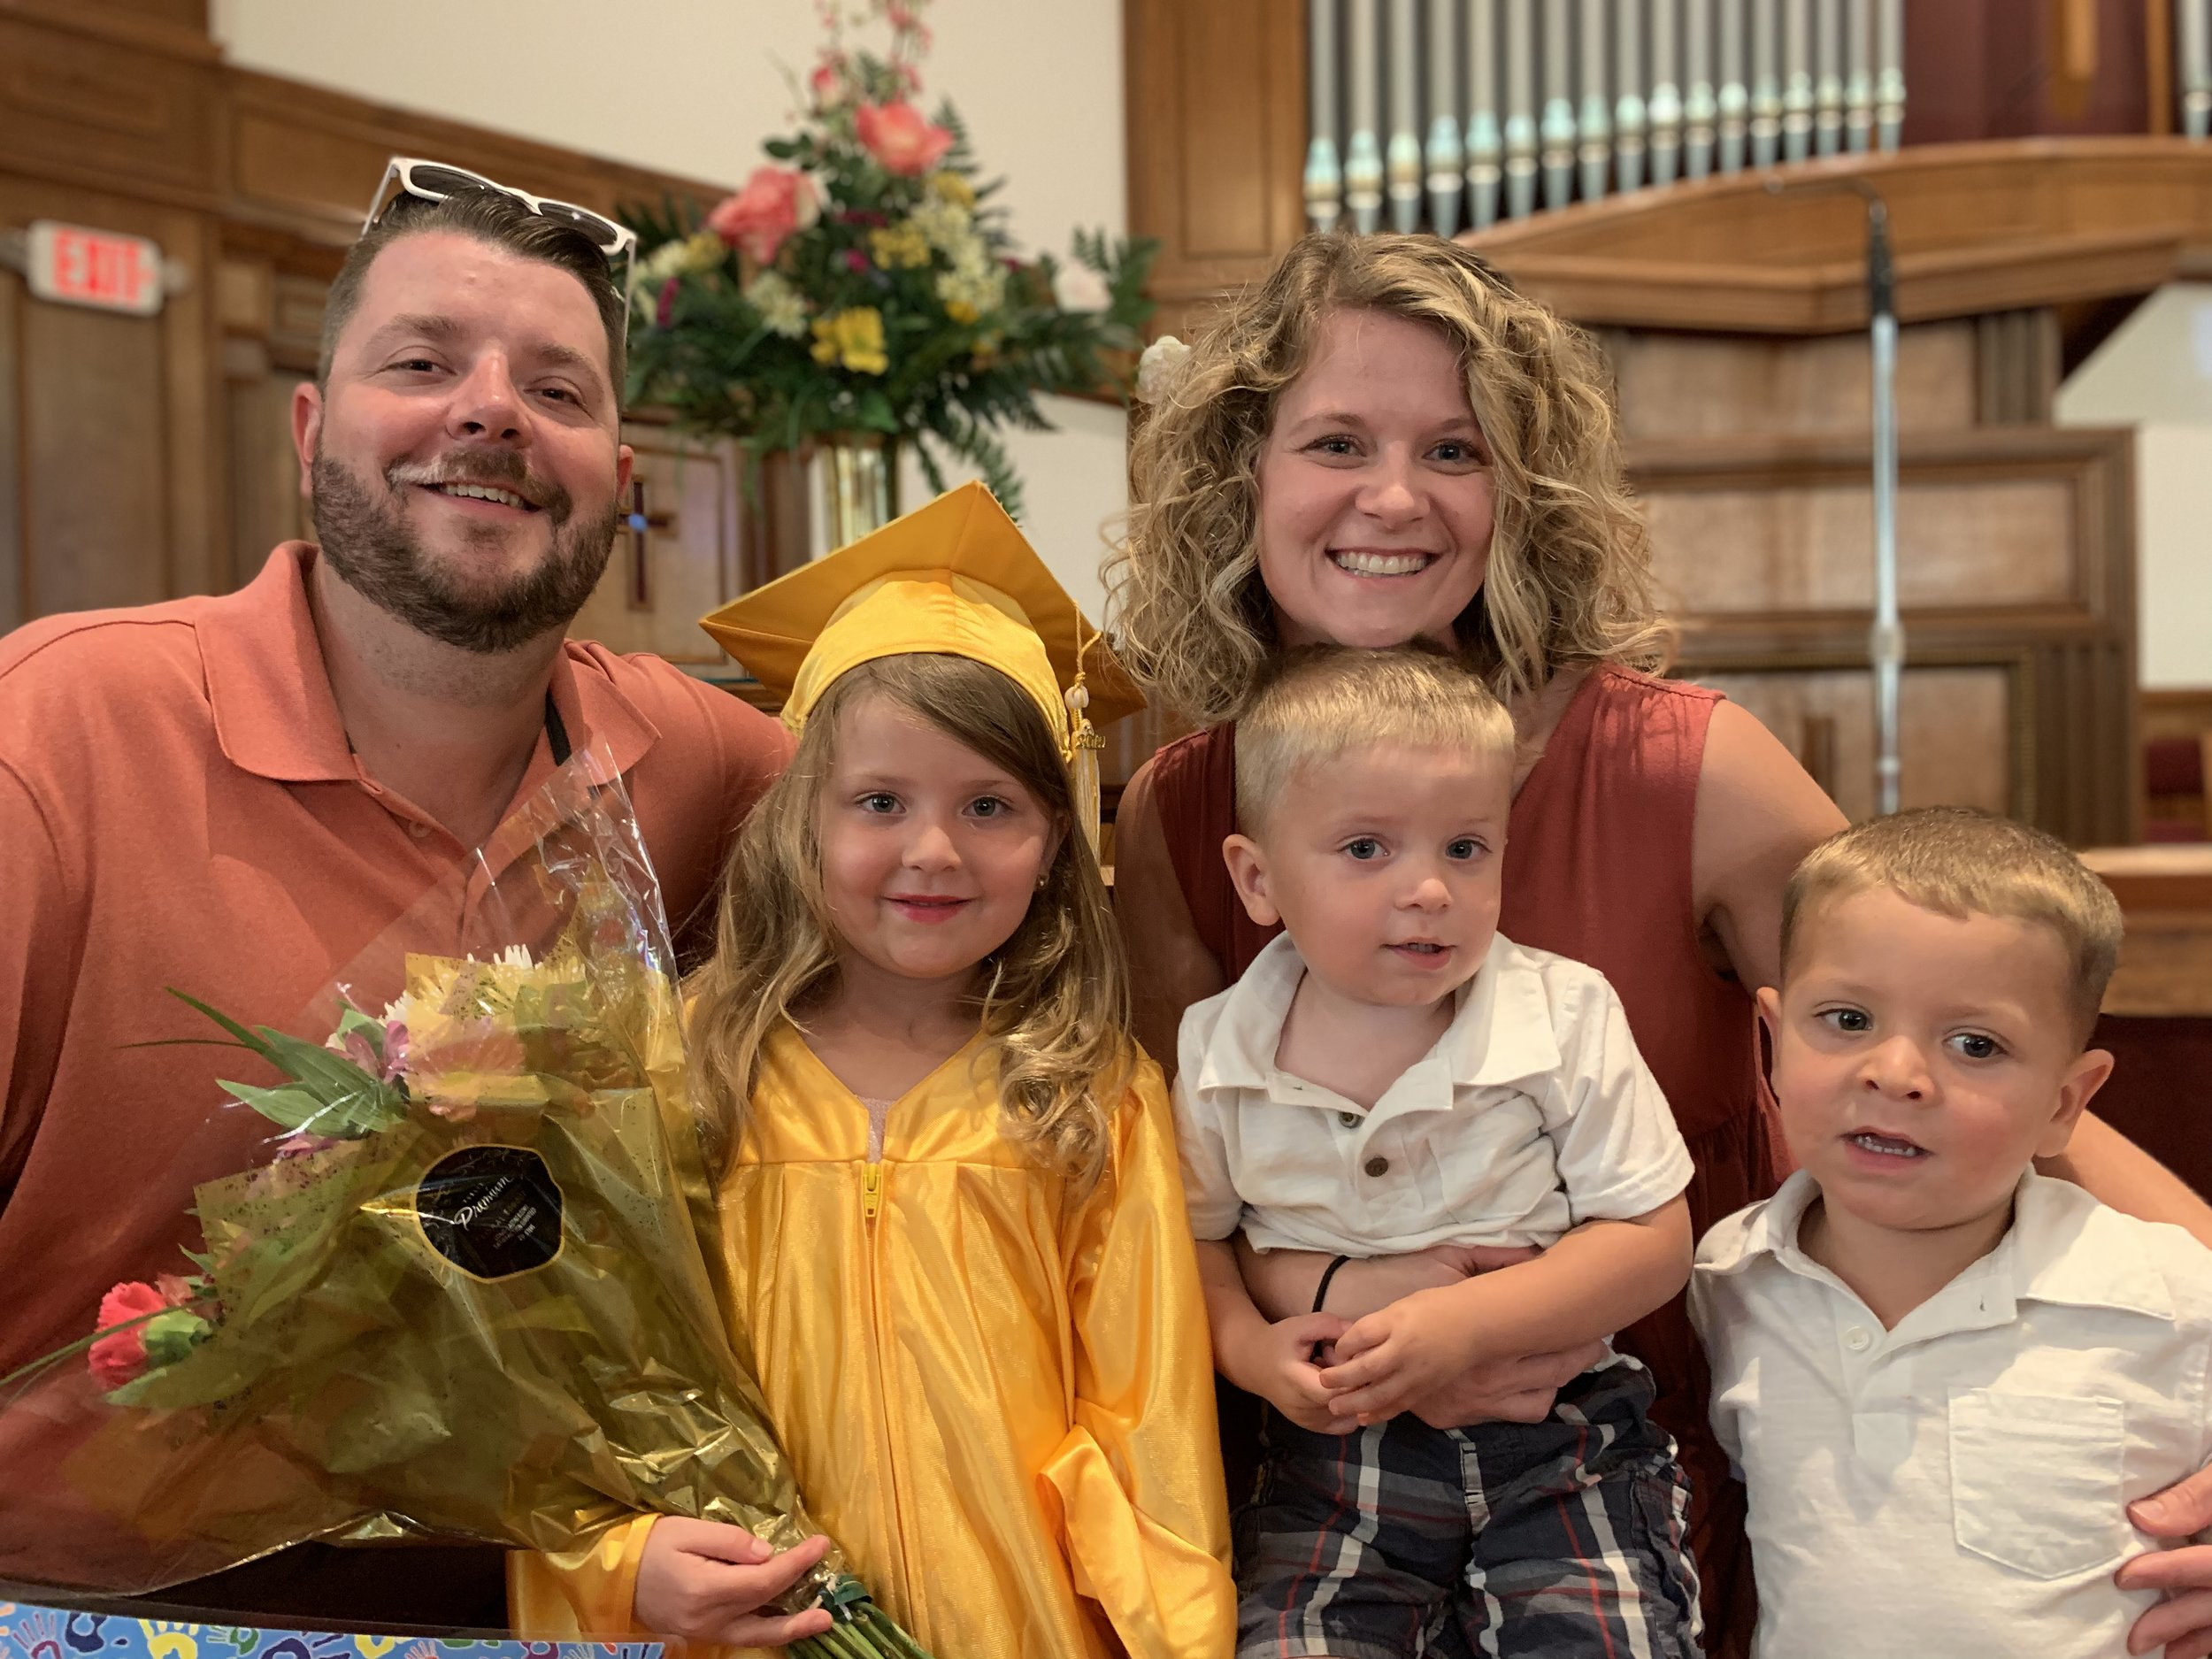 Congratulations to our VPK Graduating Class of 2019! Our graduates are ready for kindergarten and we can't wait to see what God has in store for them in elementary school!